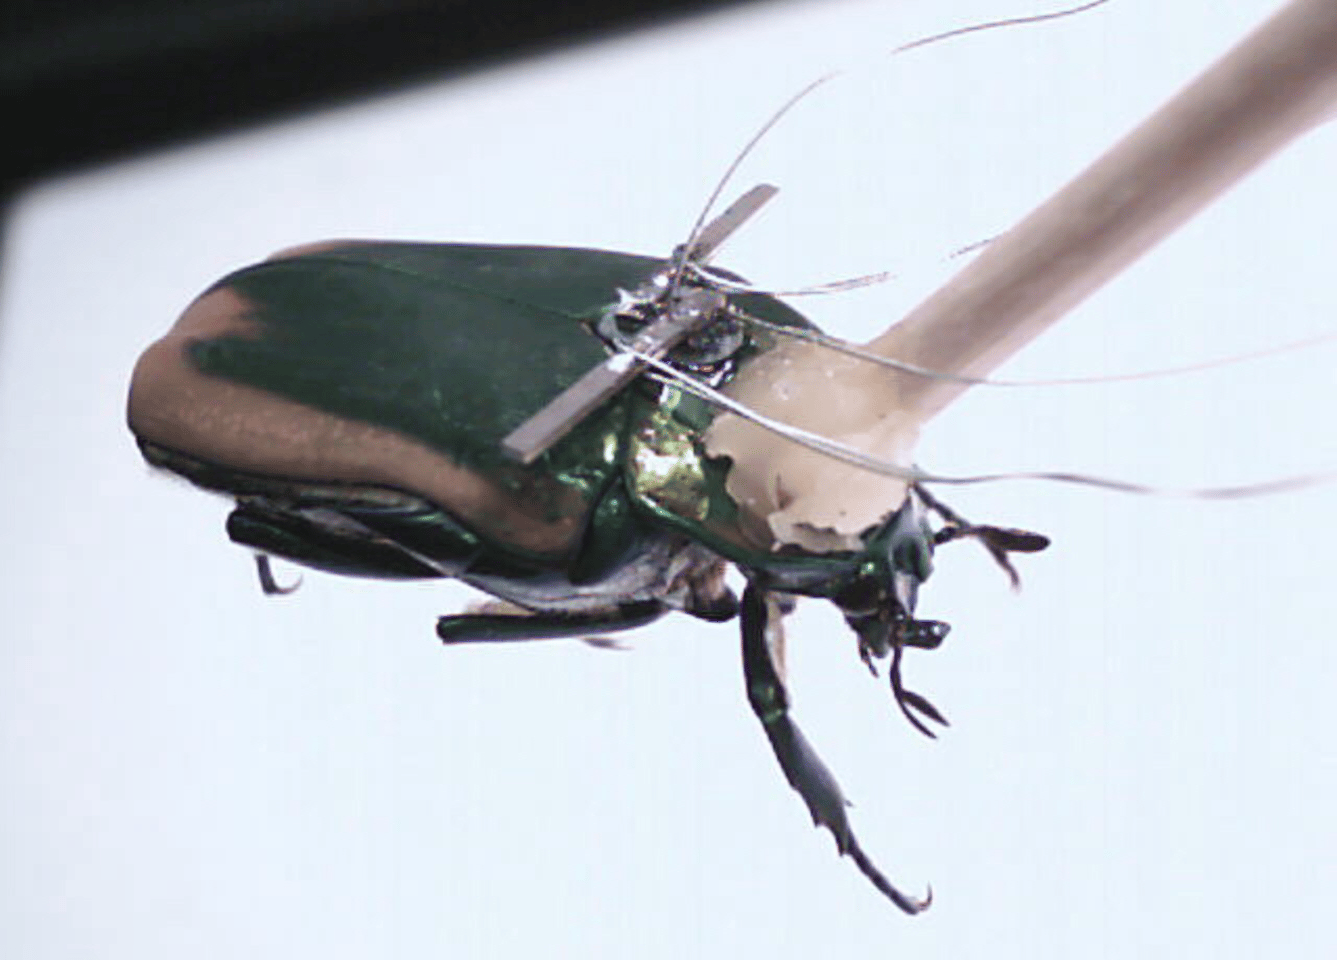 An insect fitted with a piezoelectric generator to harness energy from the insect's wings (Image: Erkan Aktakka)